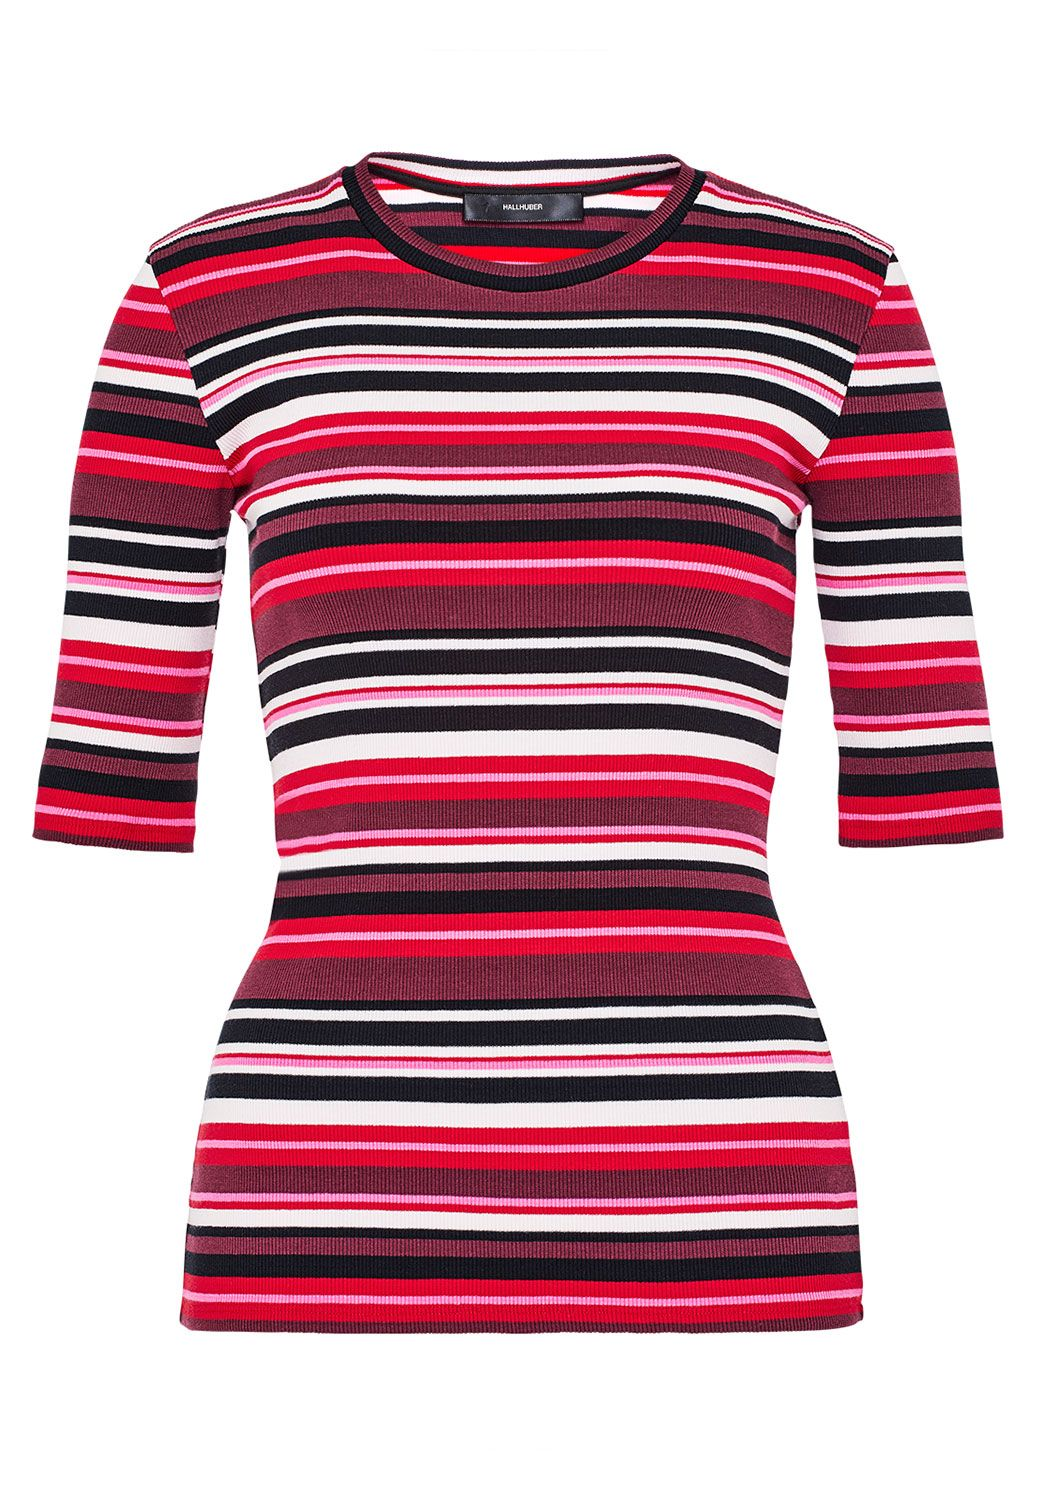 Hallhuber Striped T-Shirt With Rib Texture, Multi-Coloured